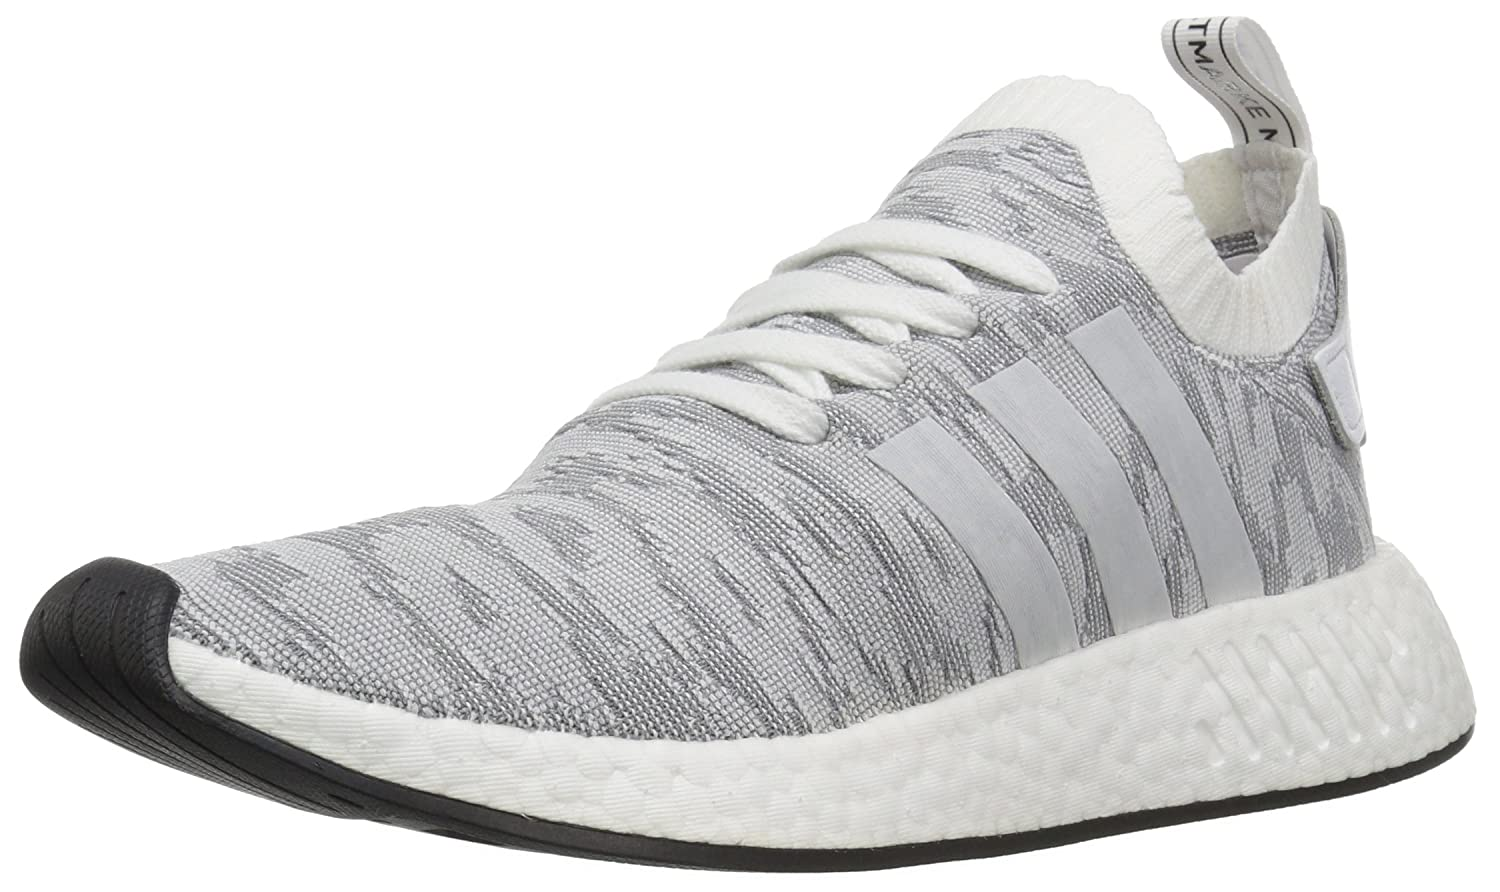 White White Black Adidas ORIGINALS Mens NMD_r2 Pk Running shoes